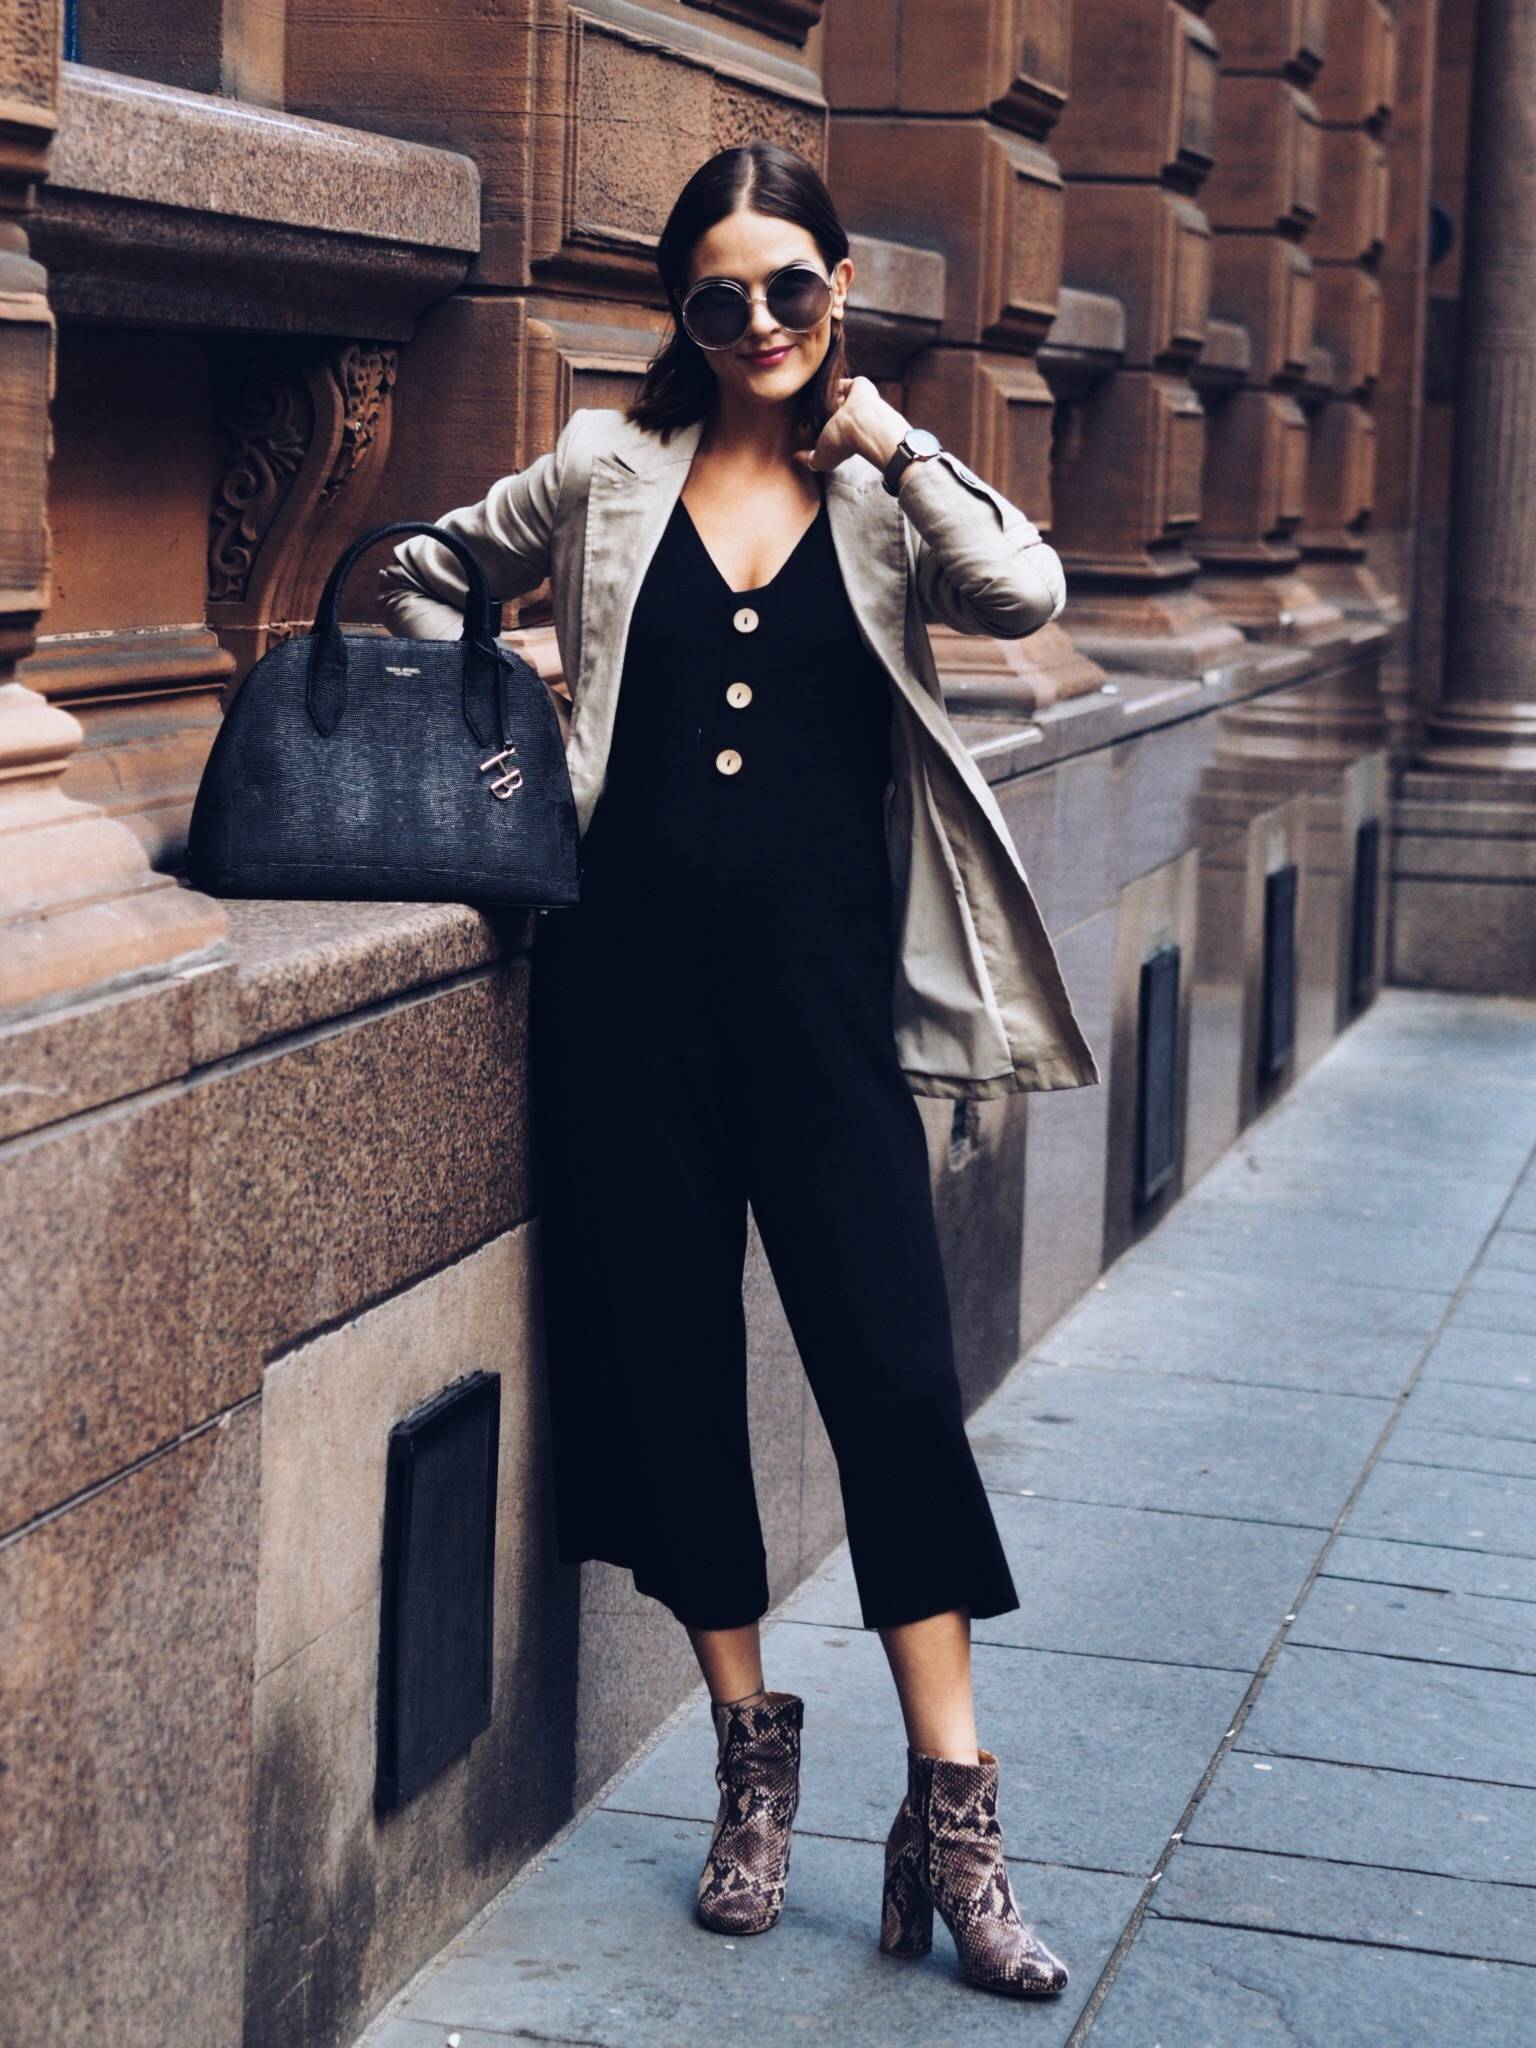 Styling-the-bump-at-18-week-fashion-blogger-lafotka